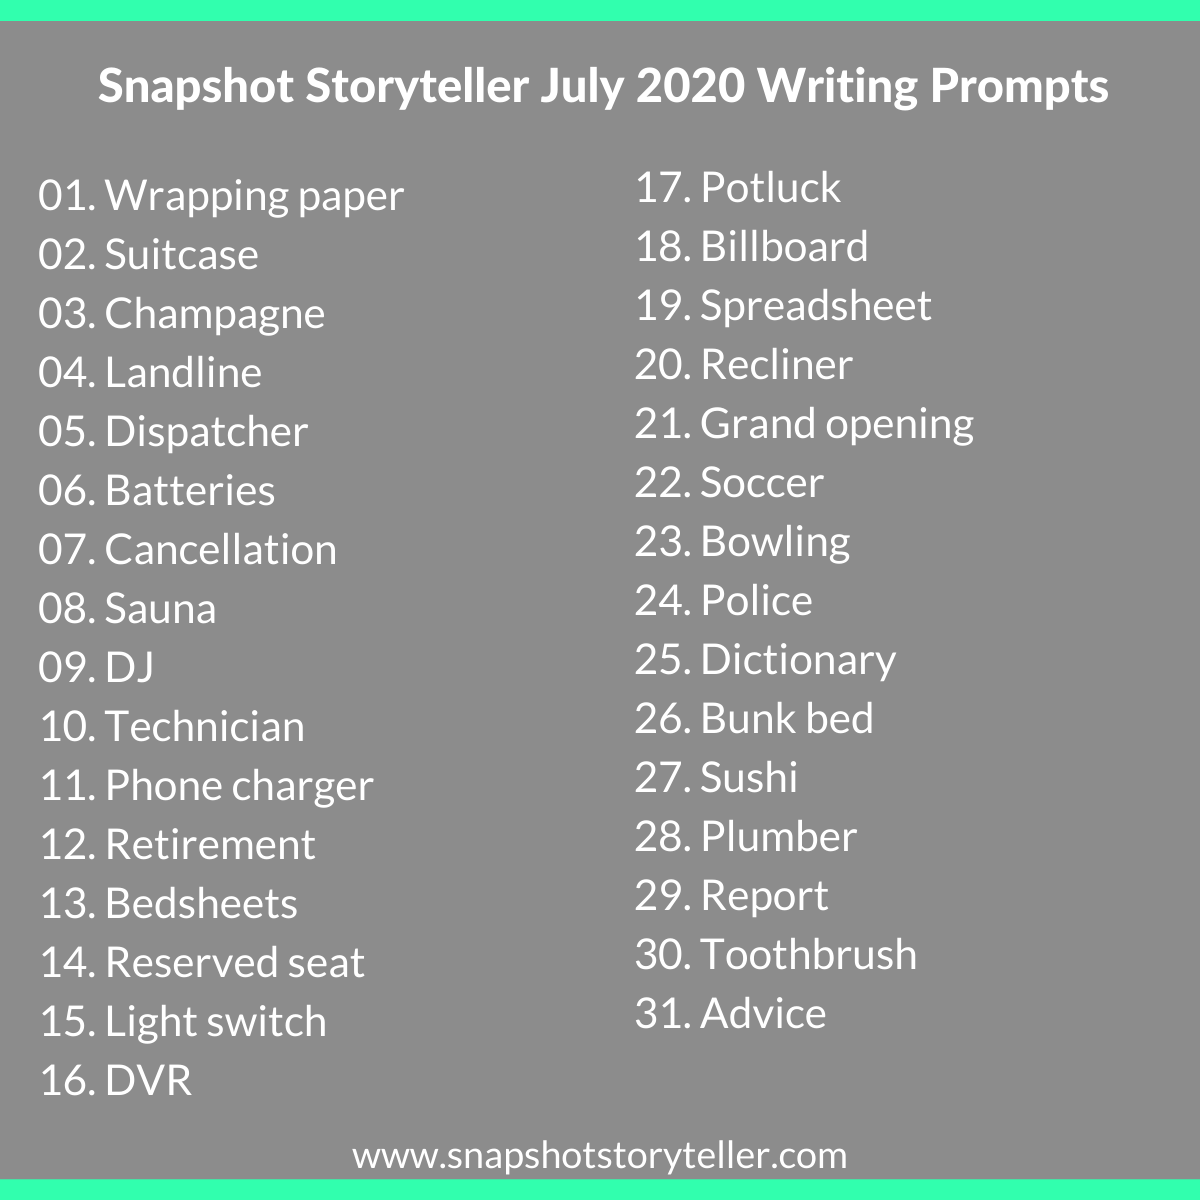 Snapshot Storyteller | July 2020 Writing Prompts | www.snapshotstoryteller.com | #amwriting #SnapshotStoryteller #creativestoryteller #creative #storyteller #creativewriter #IWrite  #WriteOn #writersofinstagram #writingprompt #writingprompts